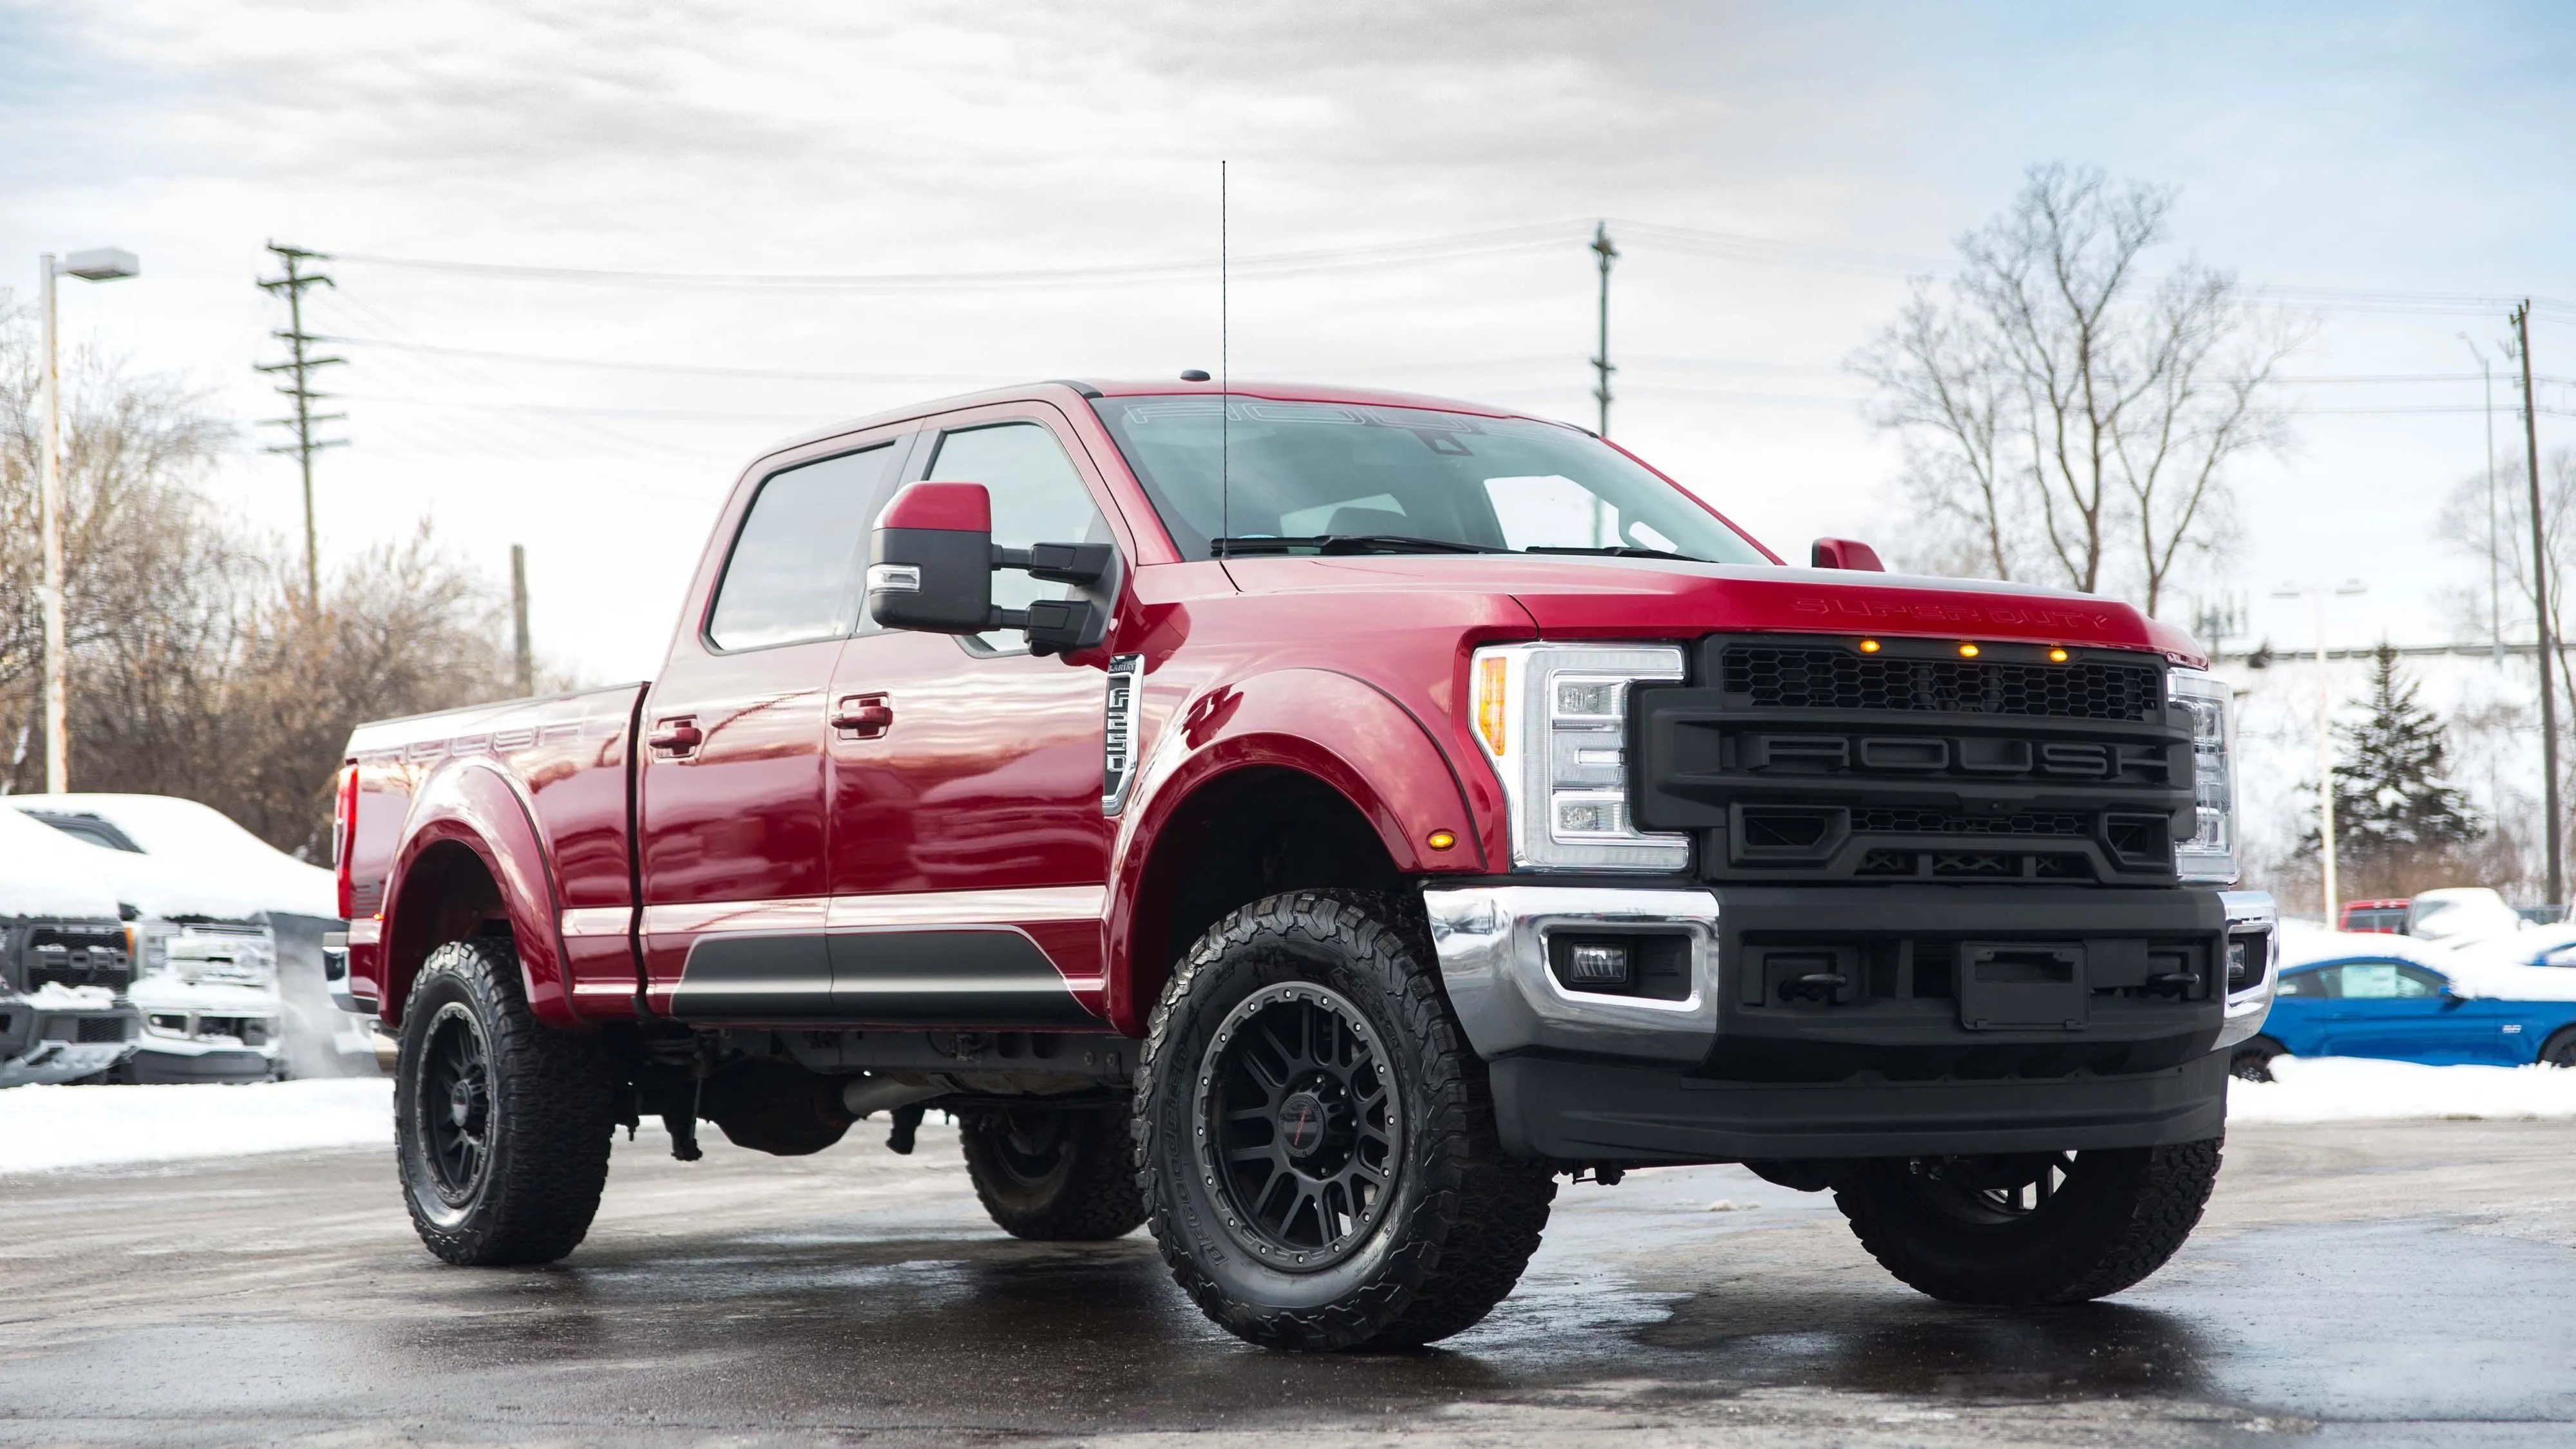 medium resolution of roush unleashes the beast in the ford super duty f 250